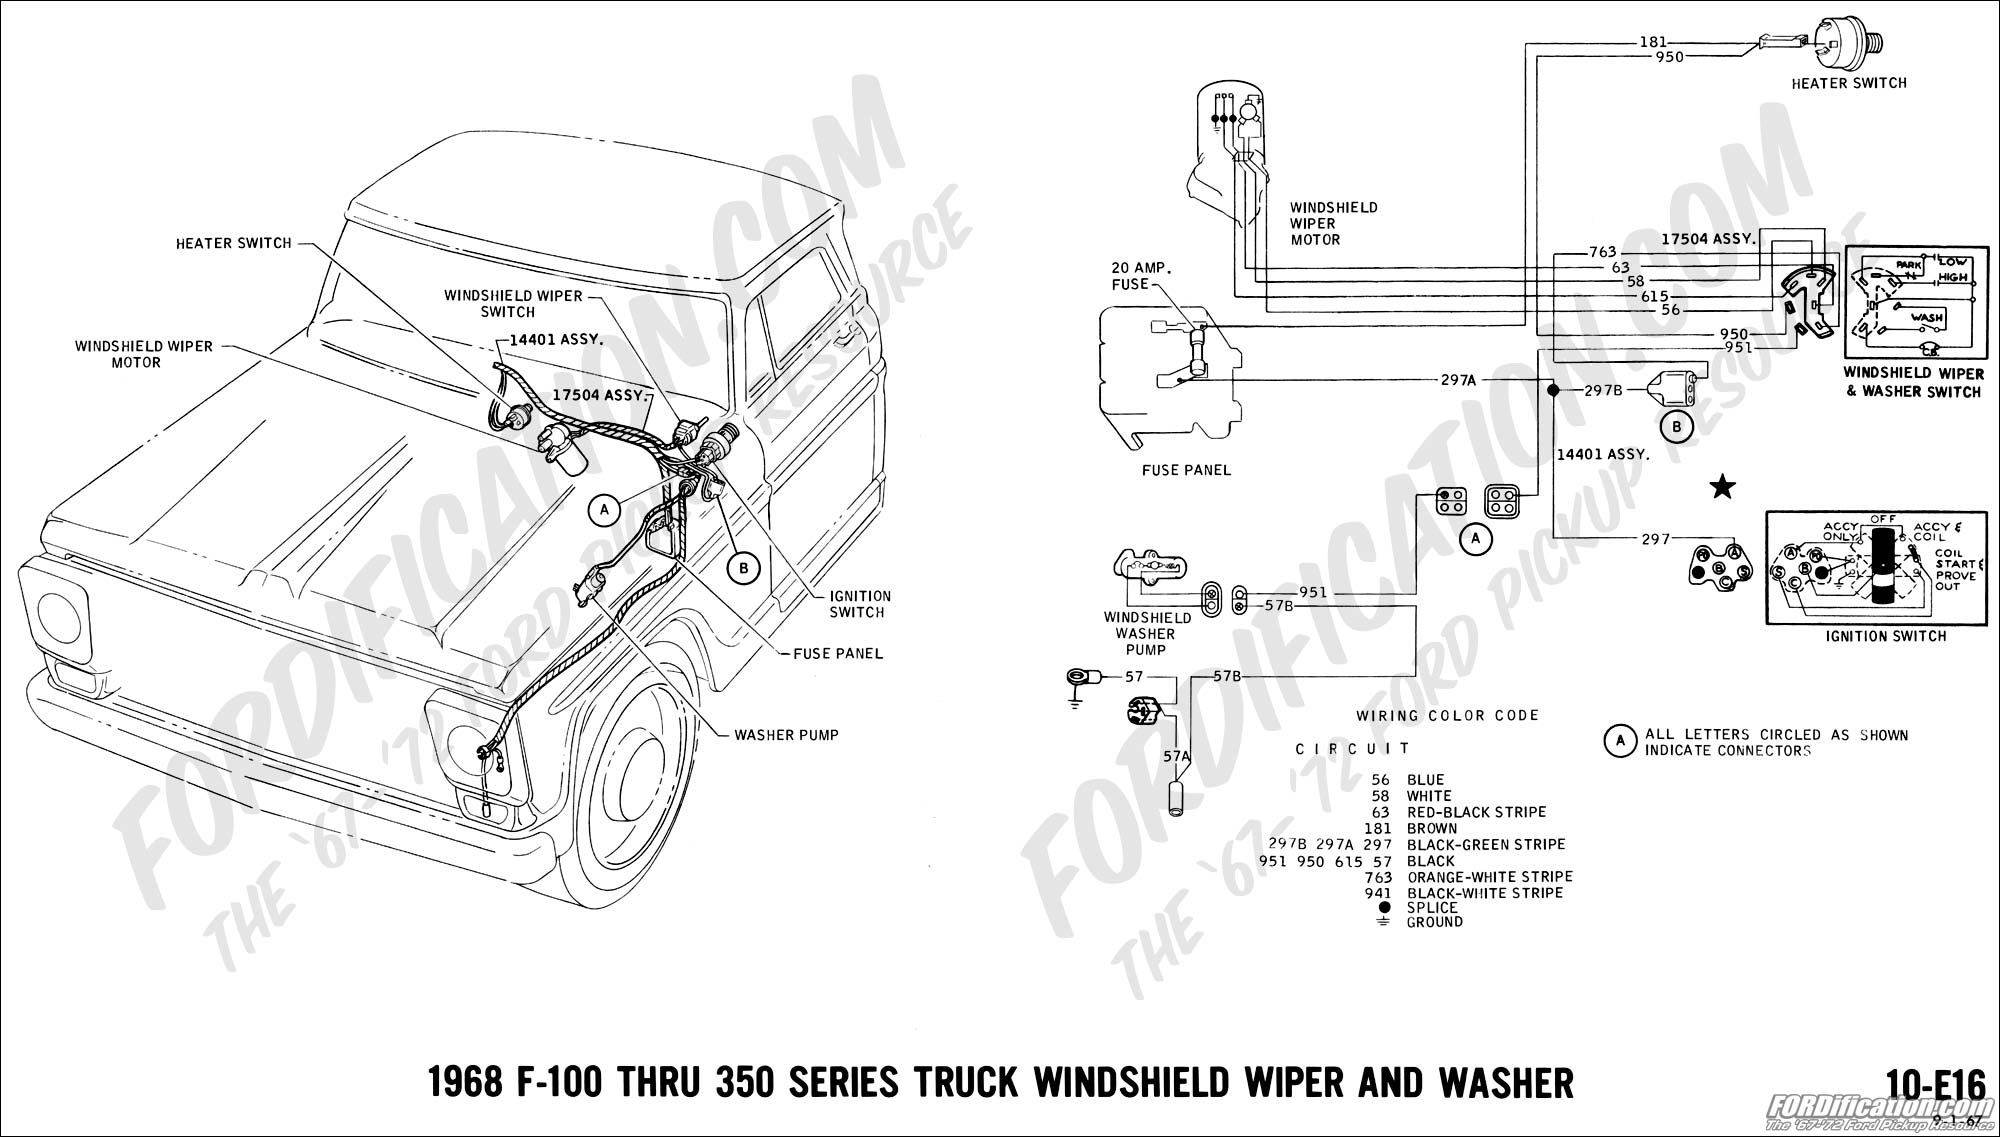 corvair truck wiring diagram wiring library 1968 f 100 thru f 350 windshield wiper and washer